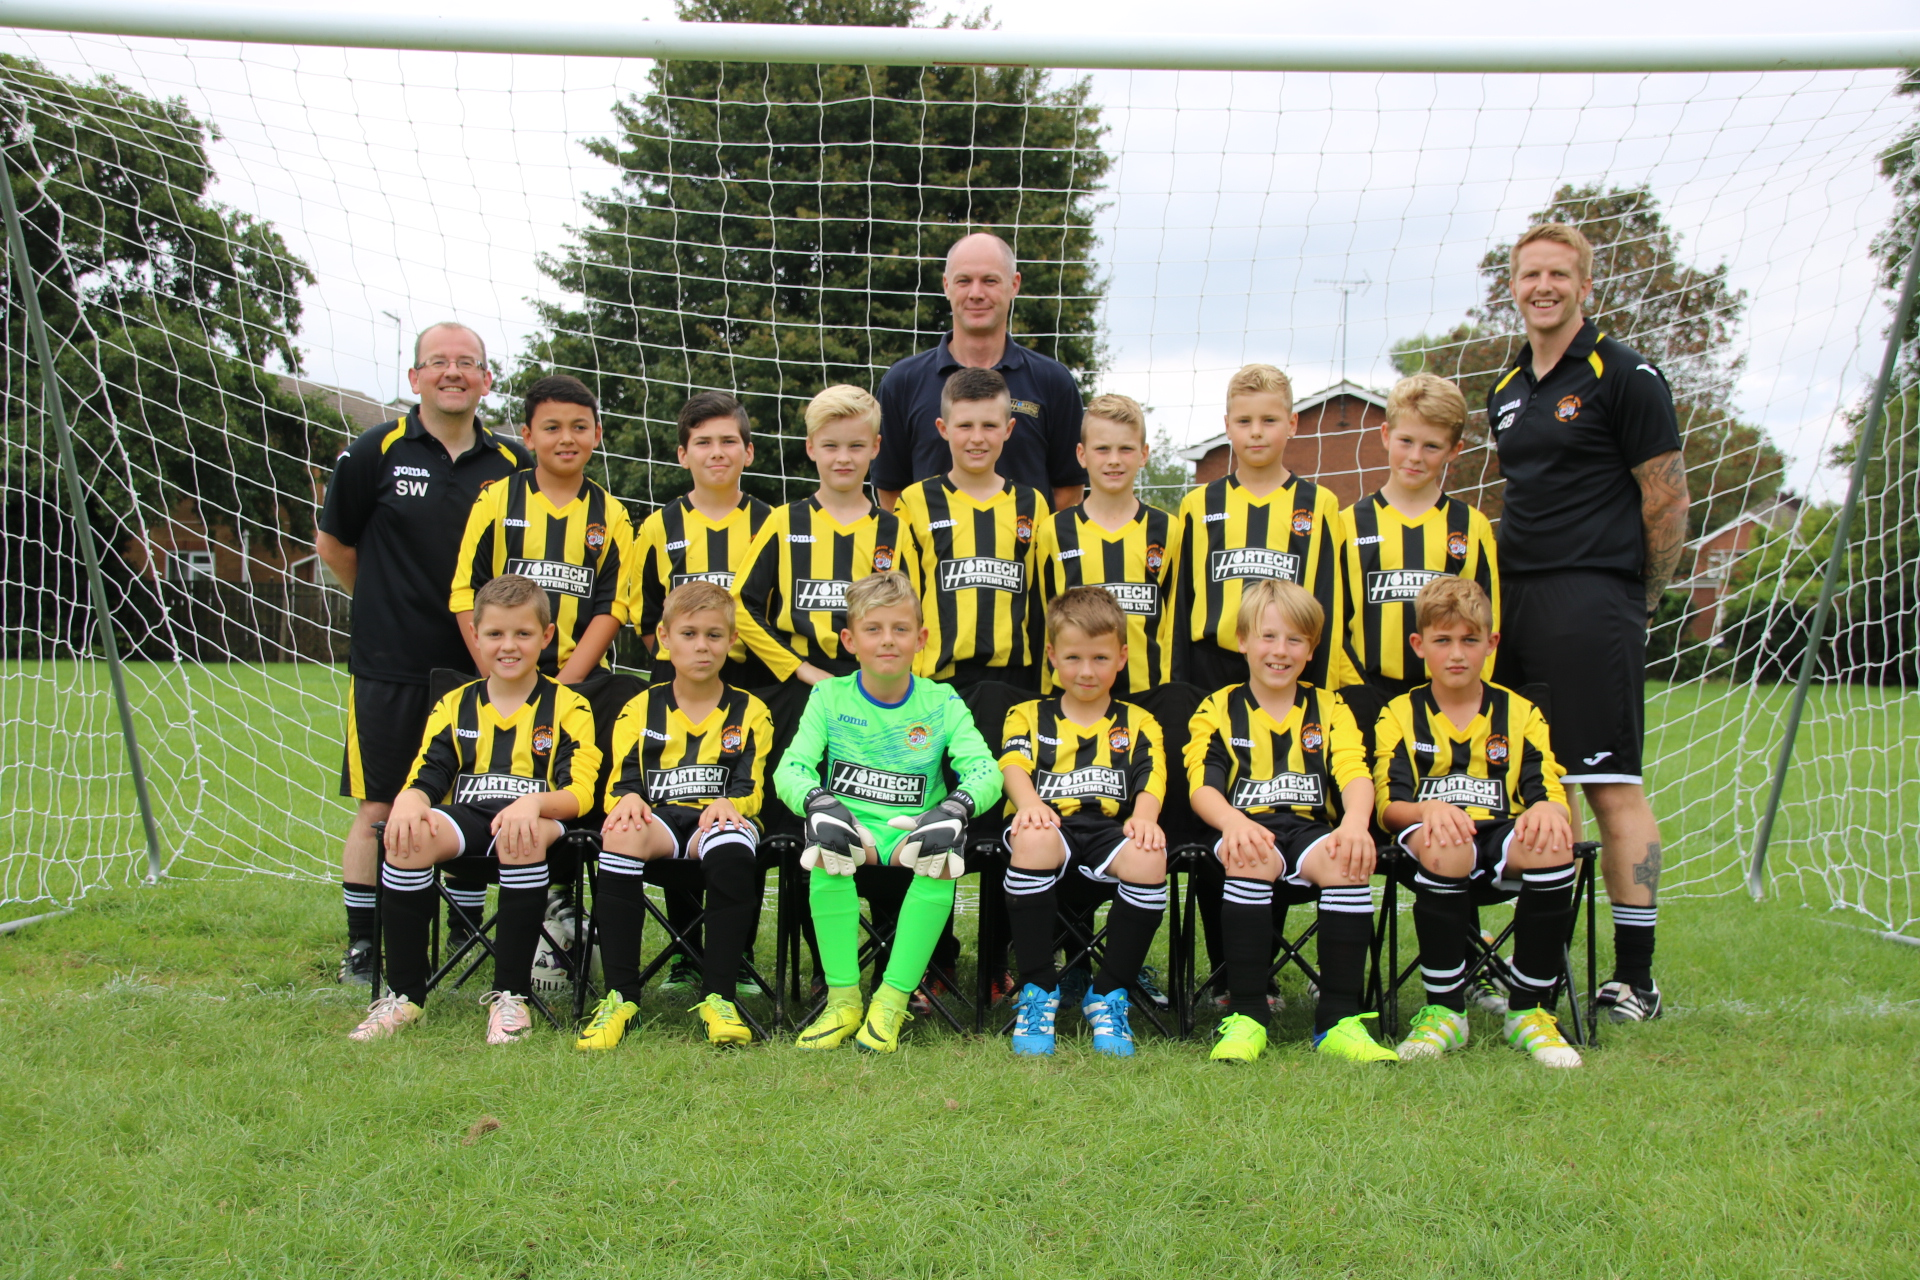 holbeach-united-football-photo.jpg